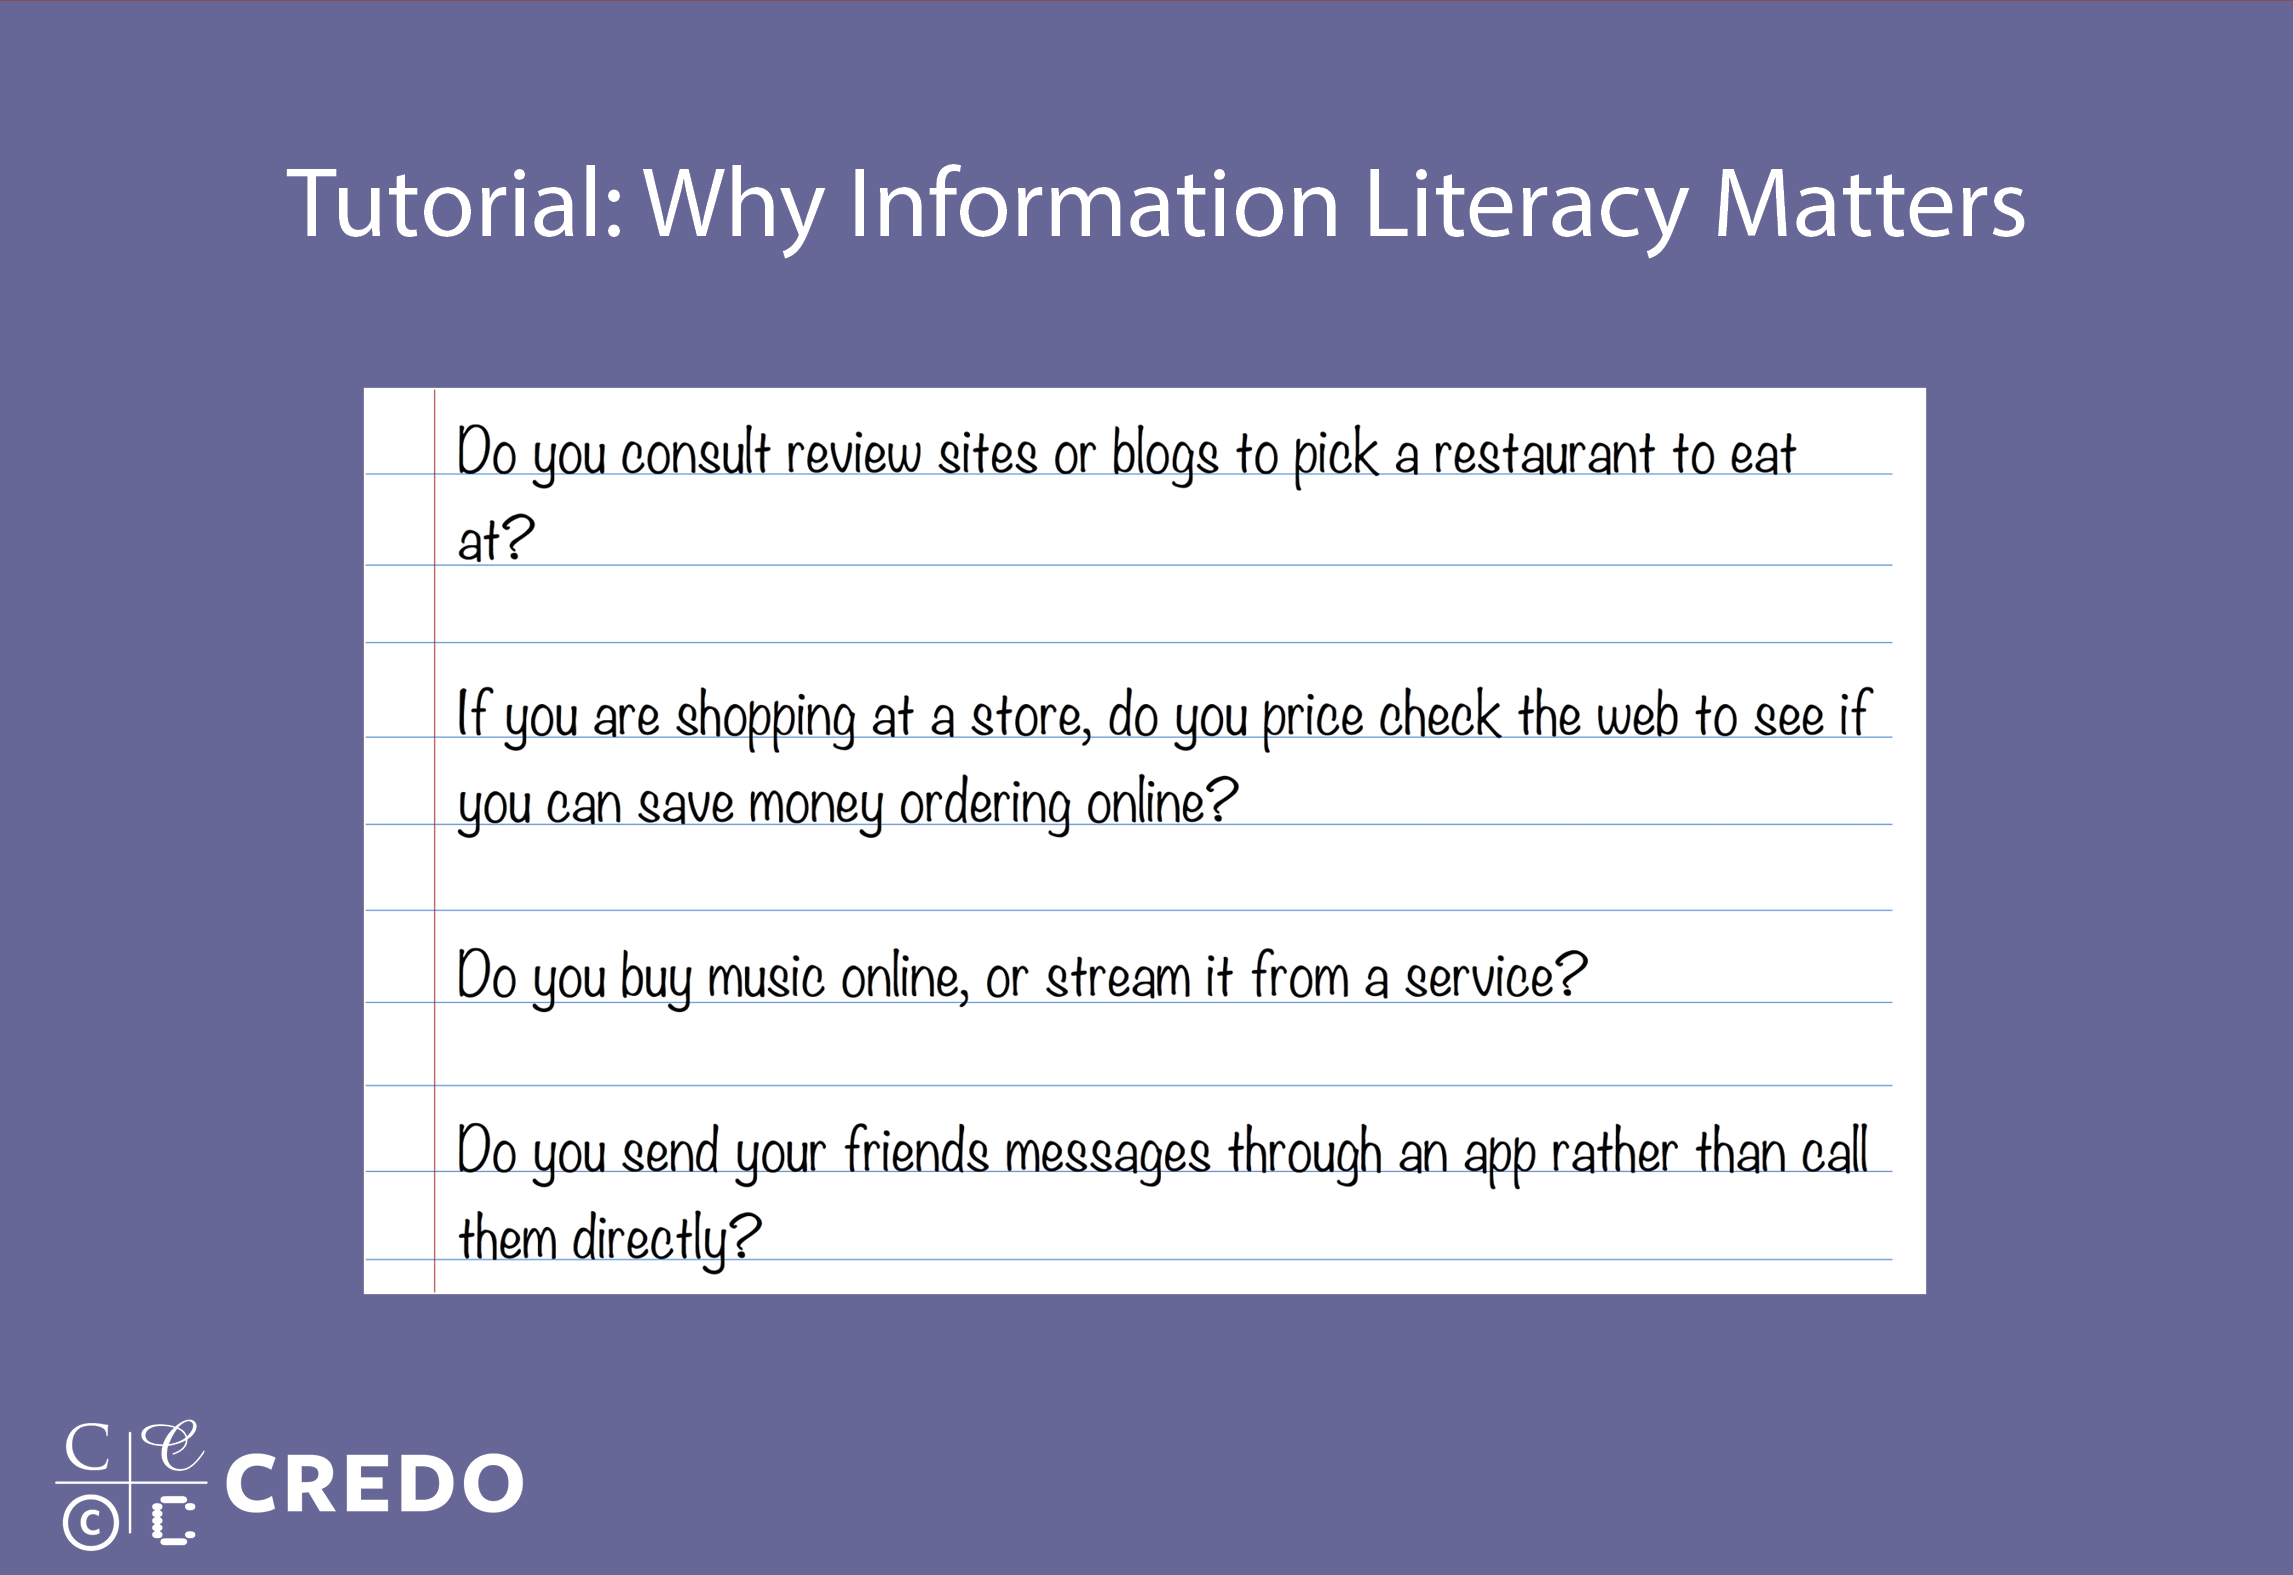 Tutorial: Why Information Literacy Matters